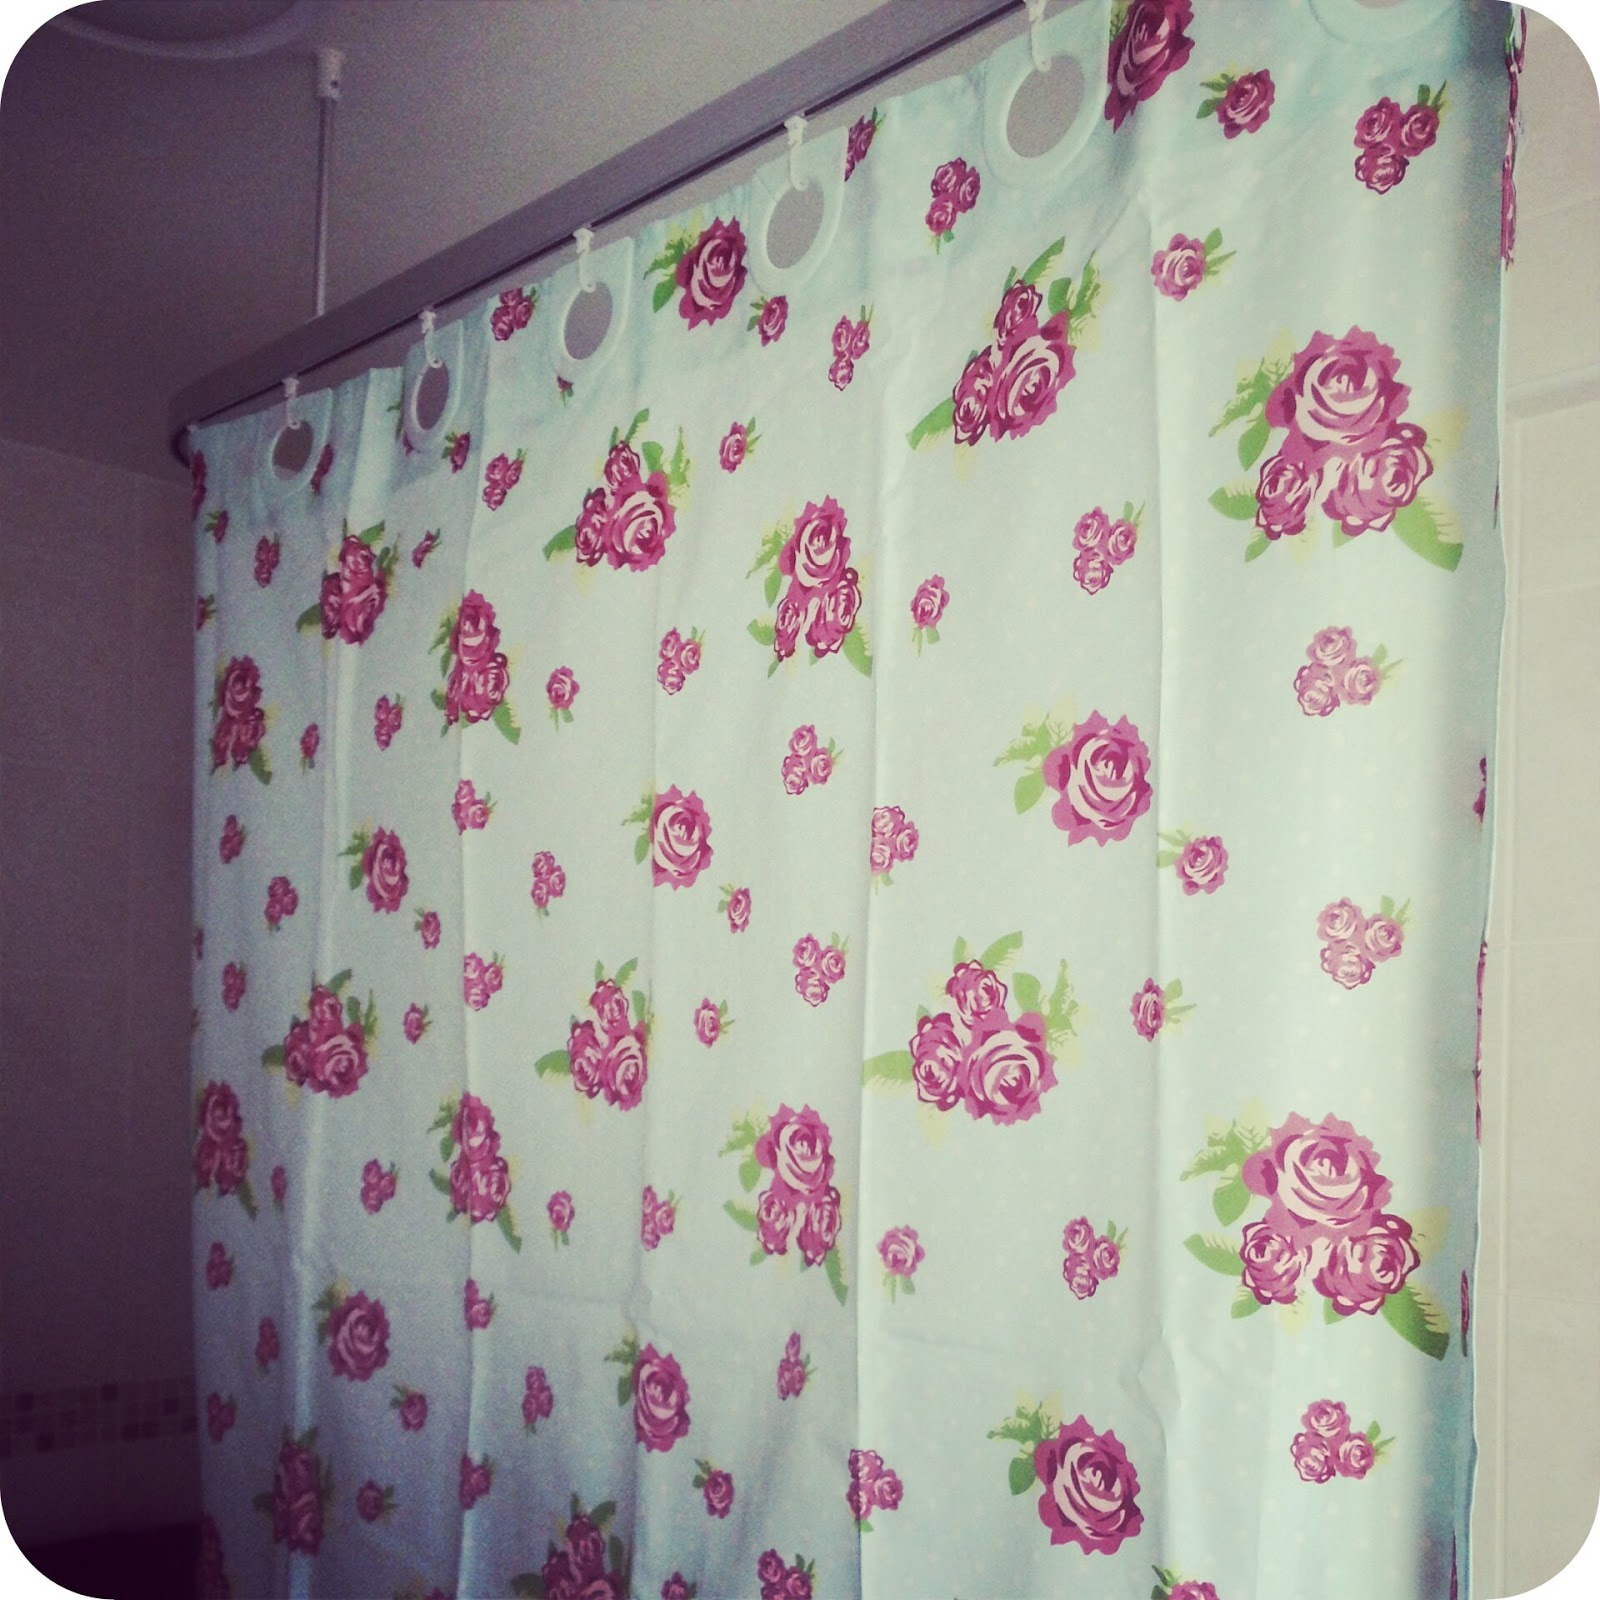 With strong, long established ties with many leading UK suppliers, we are able to offer great quality curtains at the best online prices. Our extensive range of curtains covers a wide spectrum of patterns and fabrics with the sizes and measurements available to meet all your soft furnishing needs.